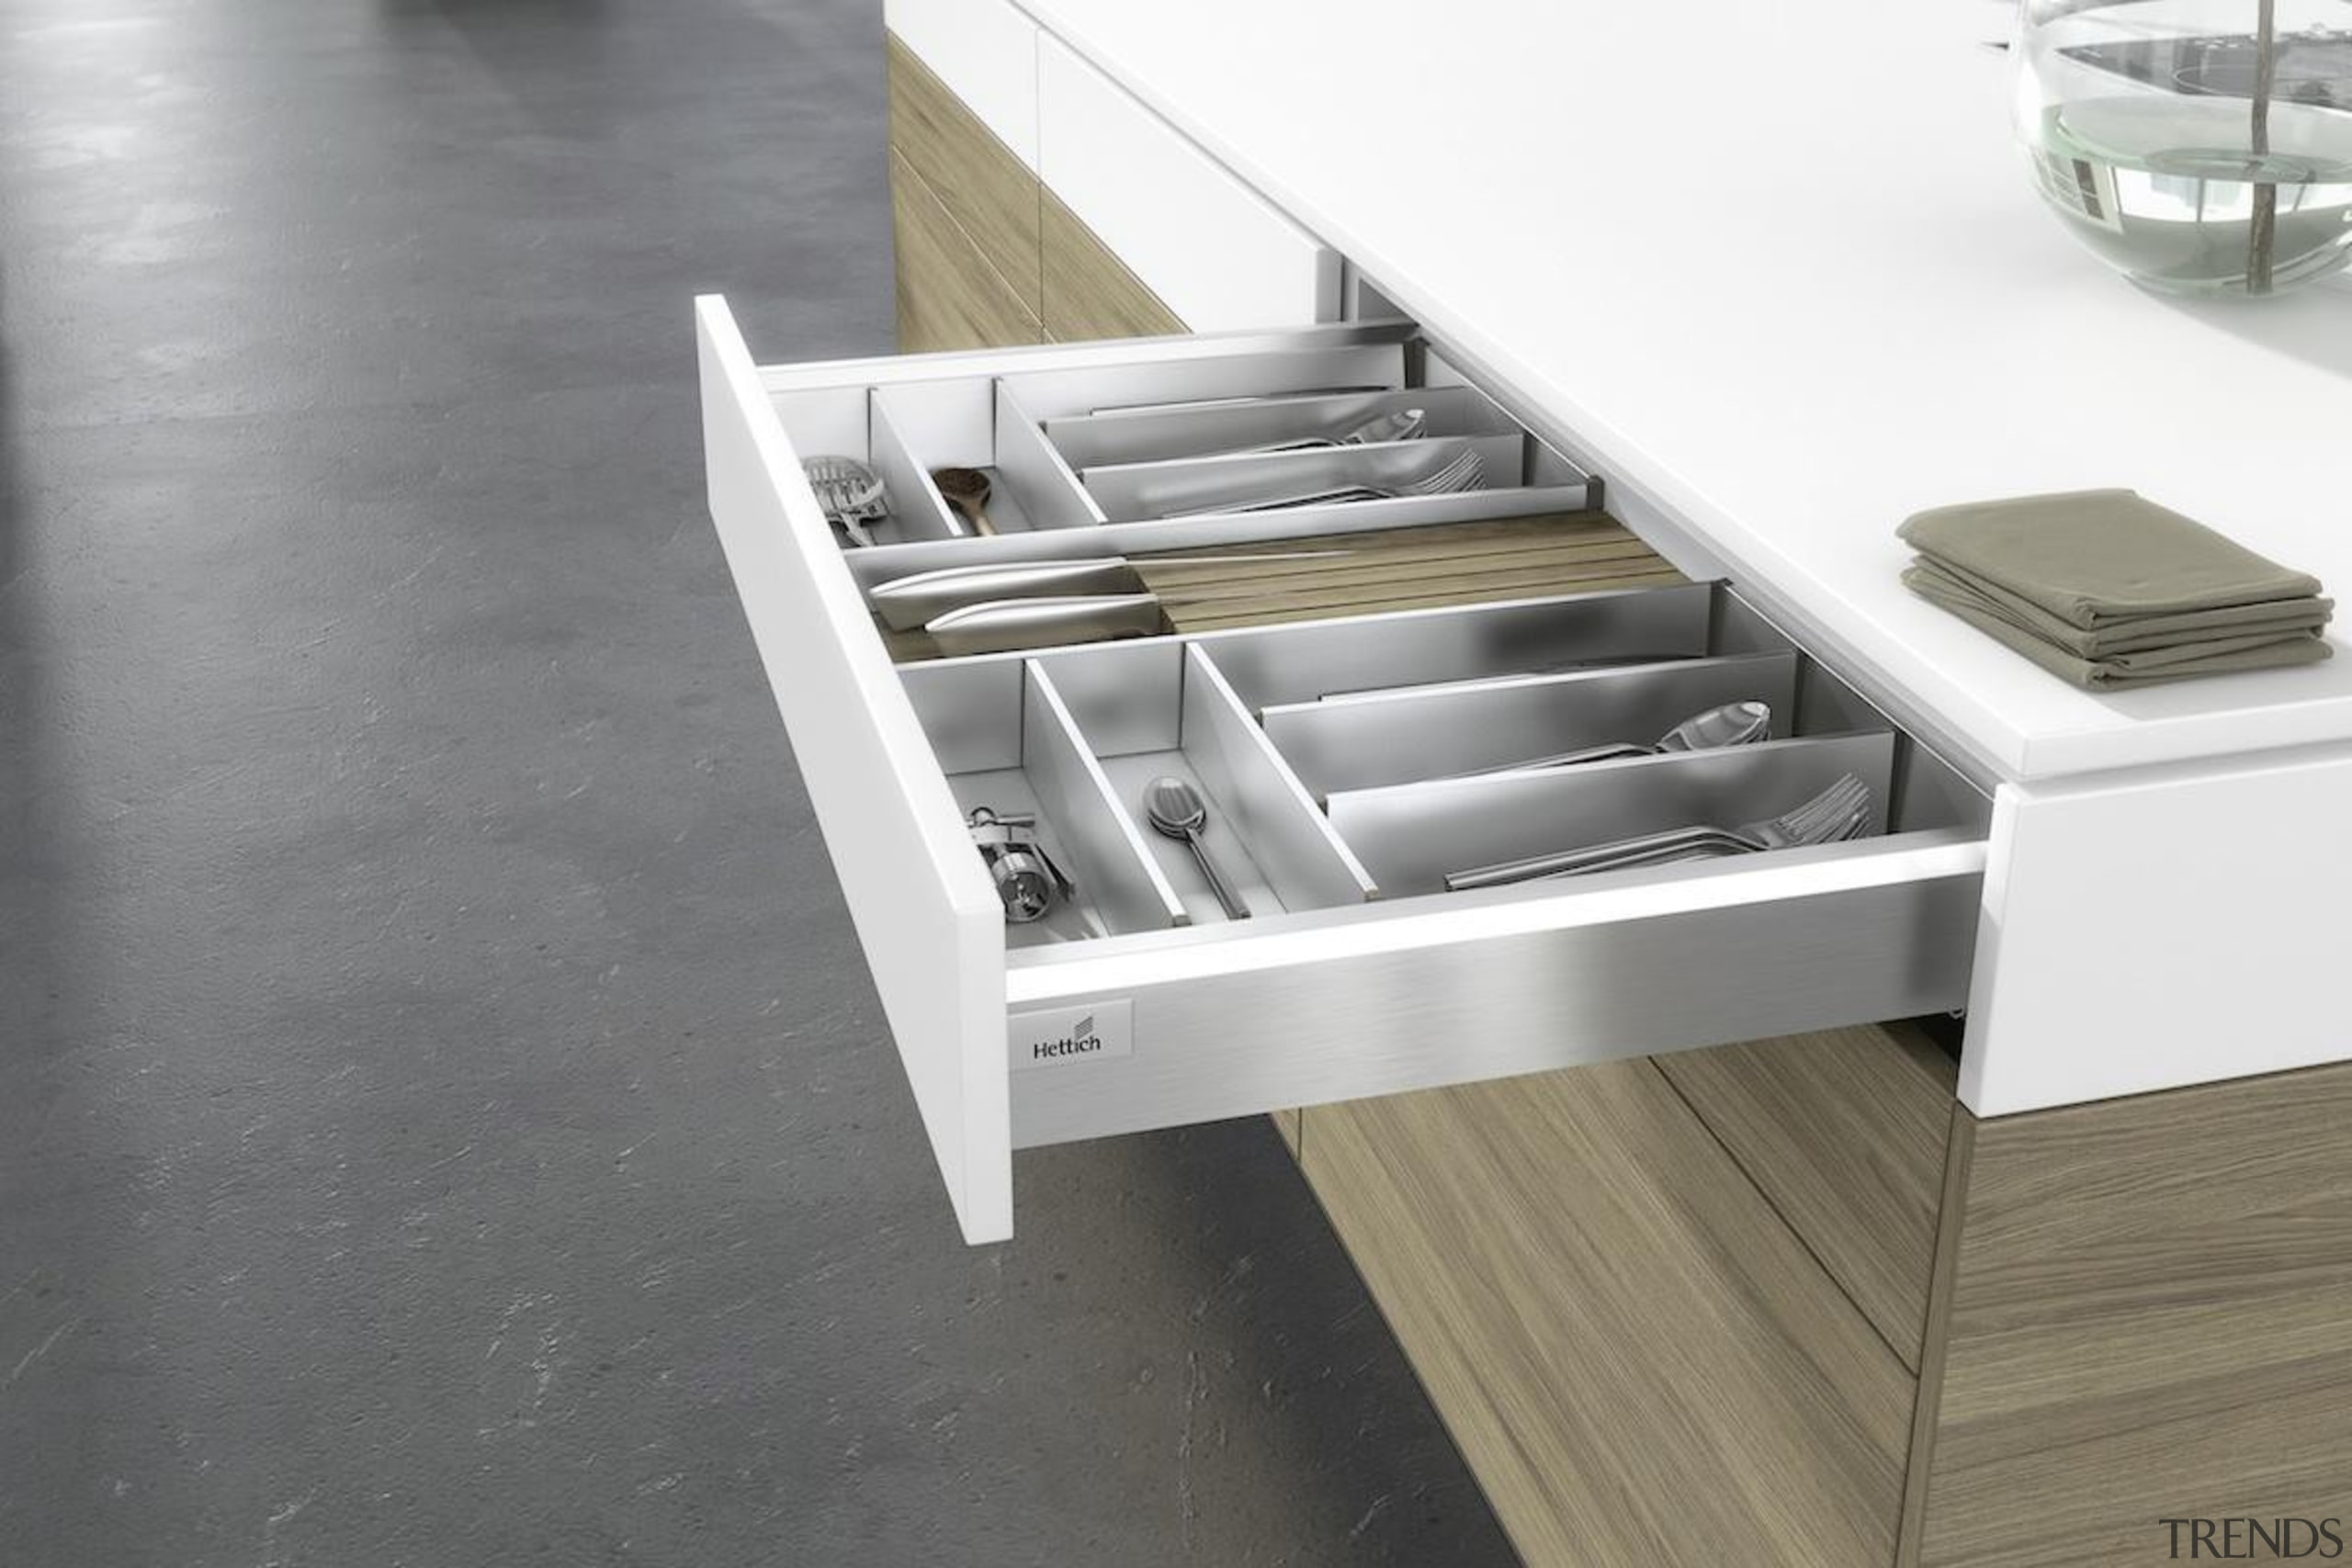 A gentle press on the front panel of floor, furniture, product, table, gray, white